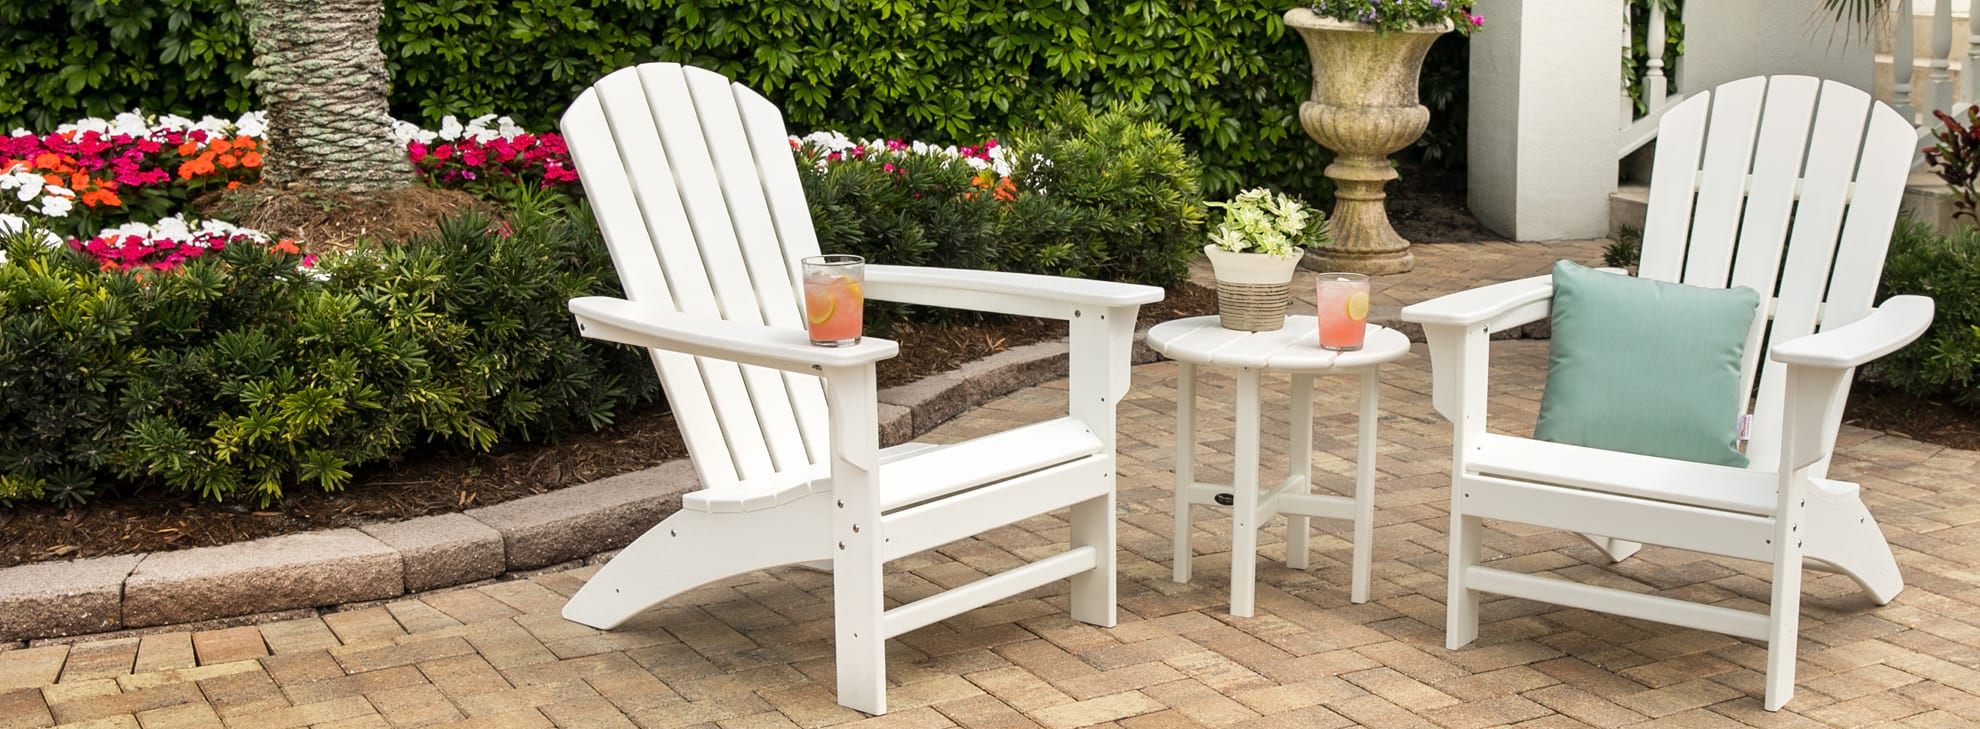 Composite Adirondack Chairs Trex Outdoor Furniture